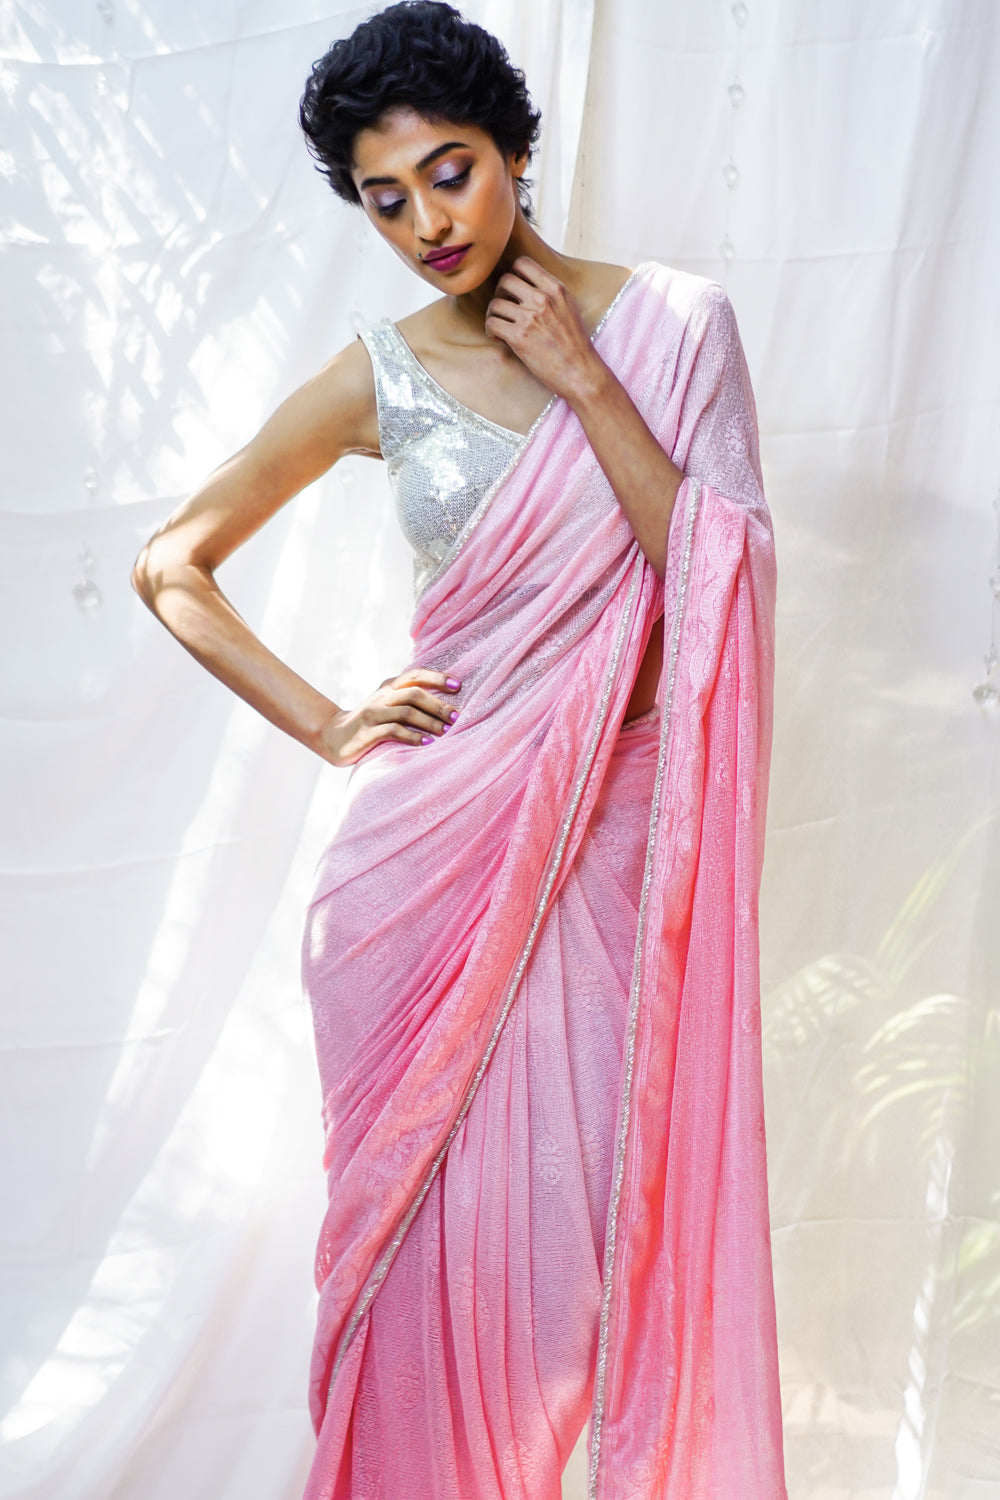 Rose Pink ombre shaded lace saree with silver bead border - House of Blouse